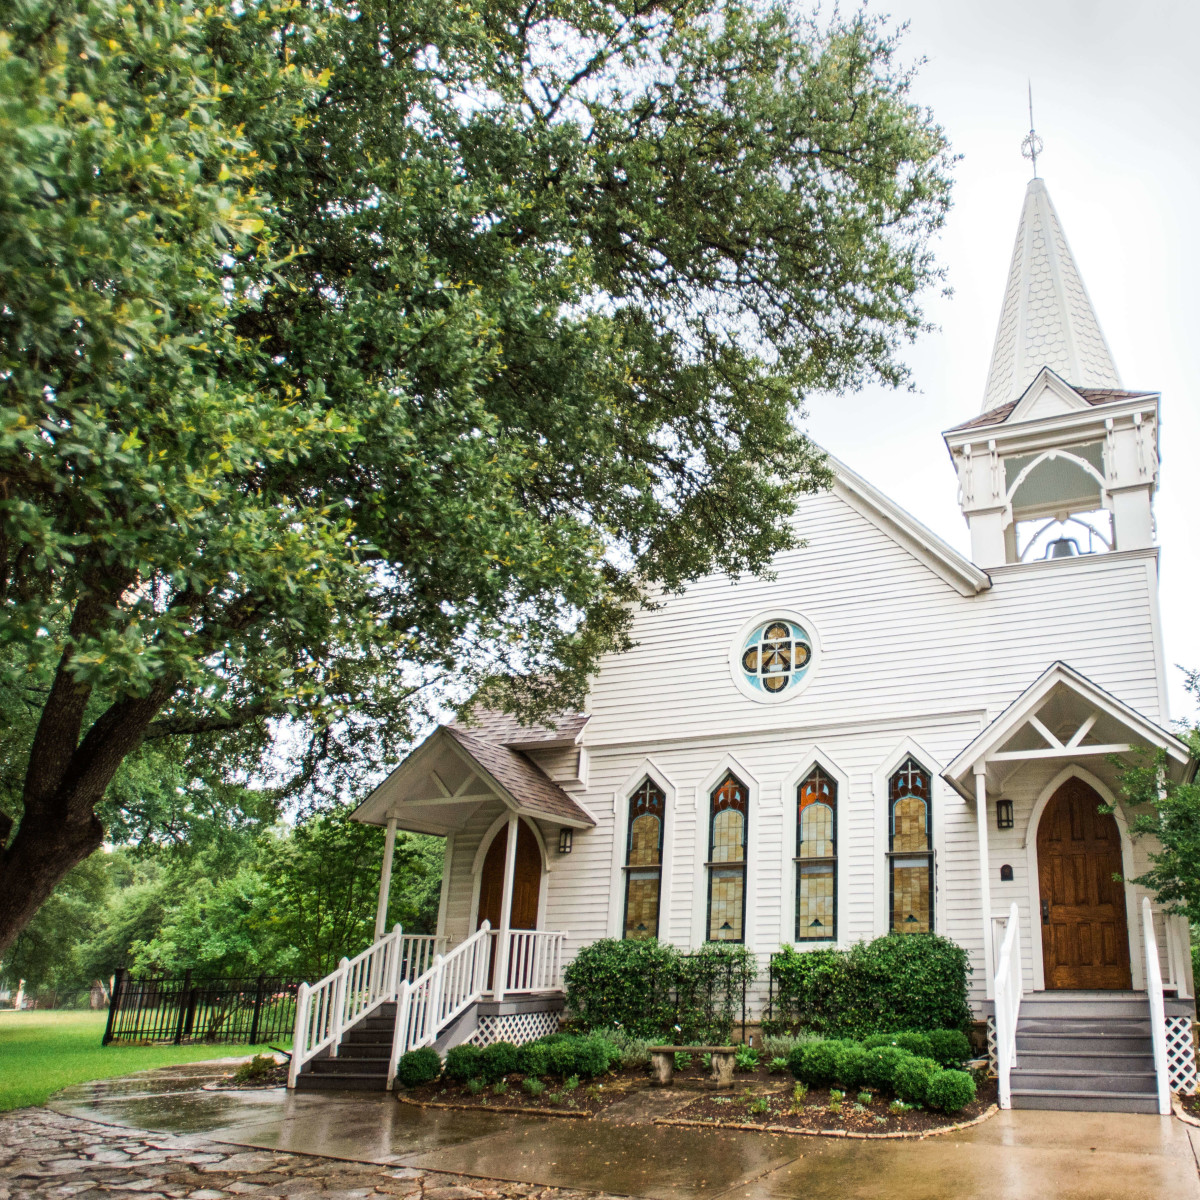 Details of Baines + Mikela's Salado Wedding